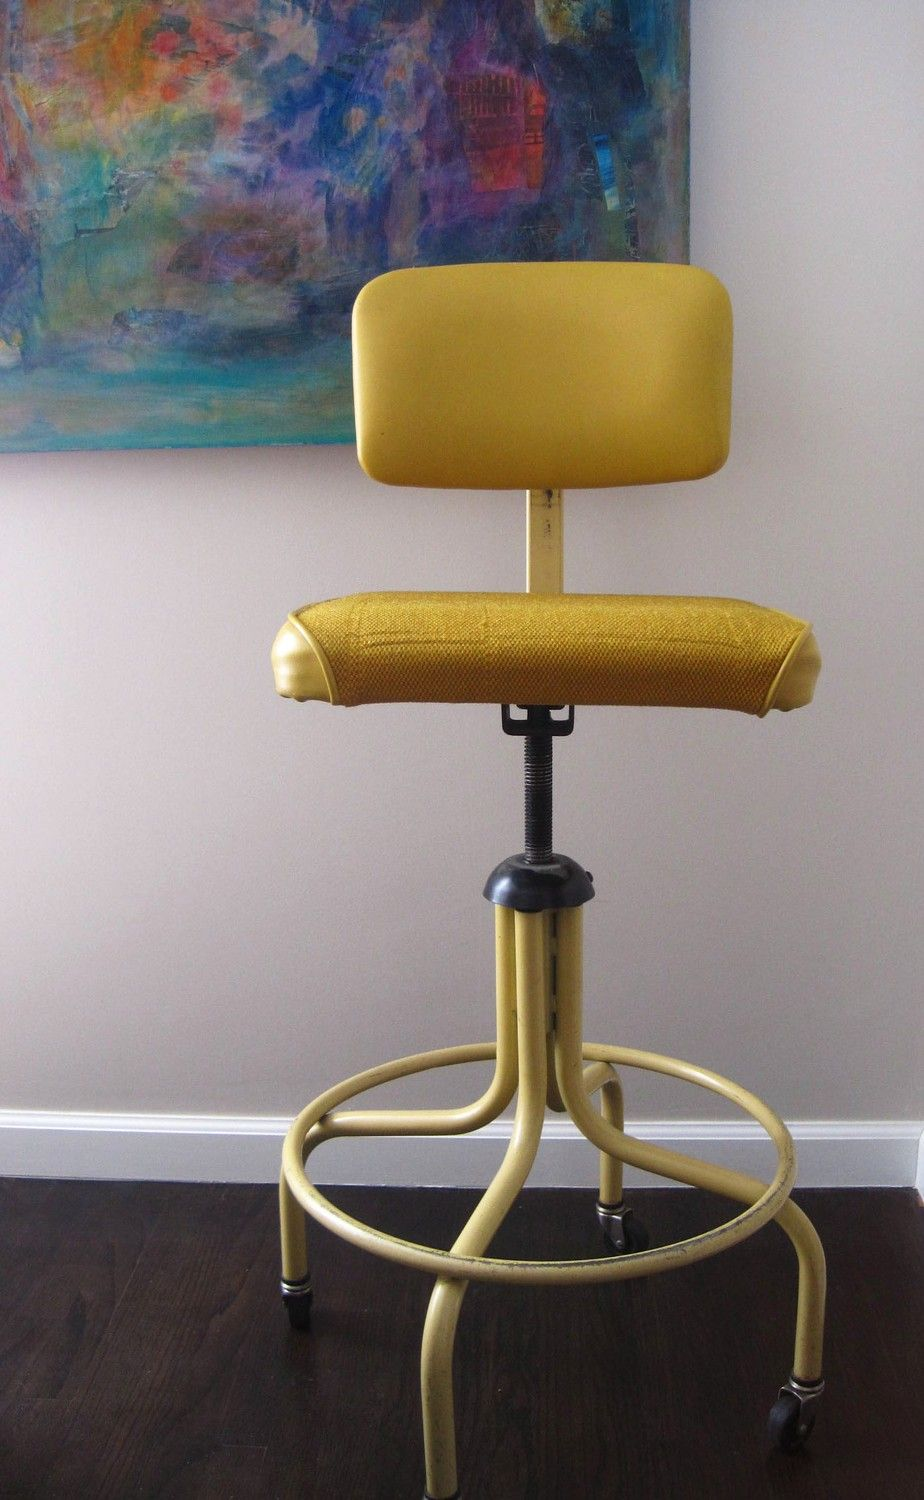 Vintage Drafting Chair Google Search Drafting Chair Retro